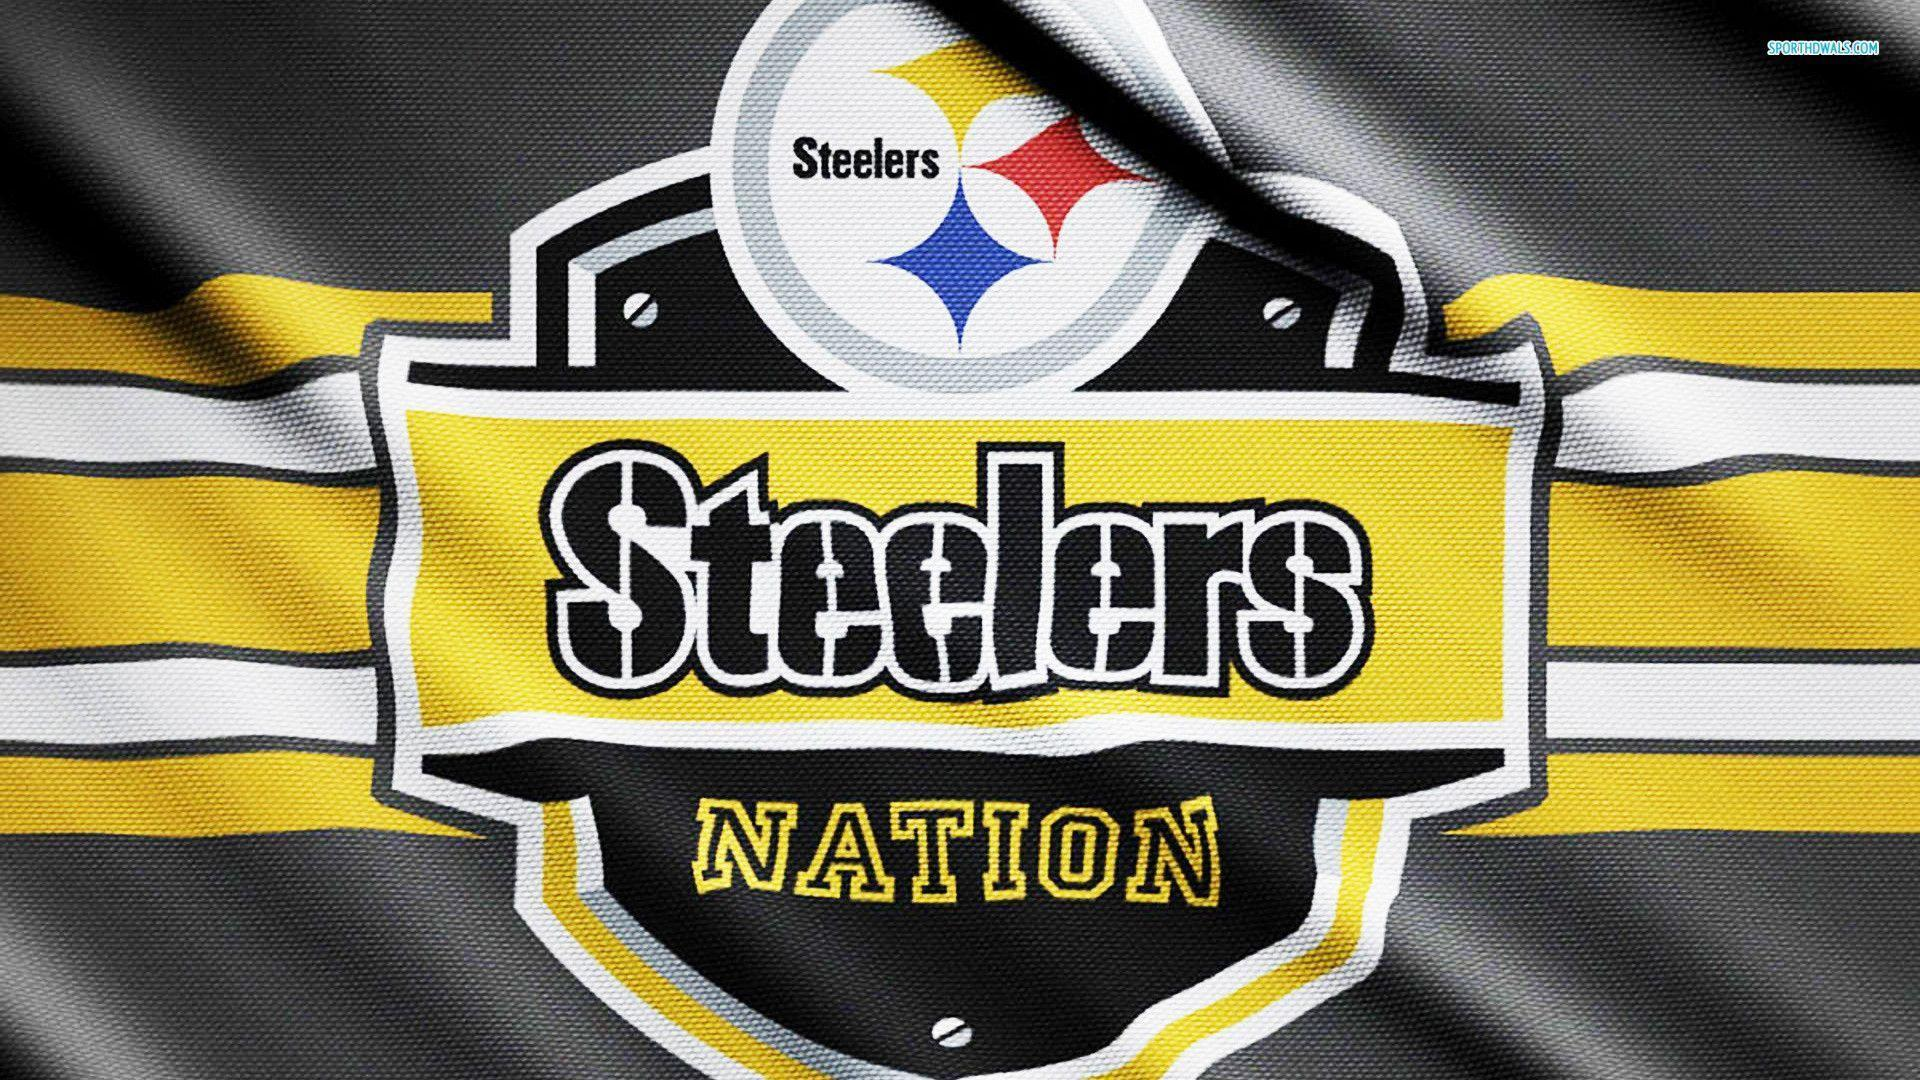 Pittsburgh Steelers Backgrounds For Computers - Wallpaper Cave